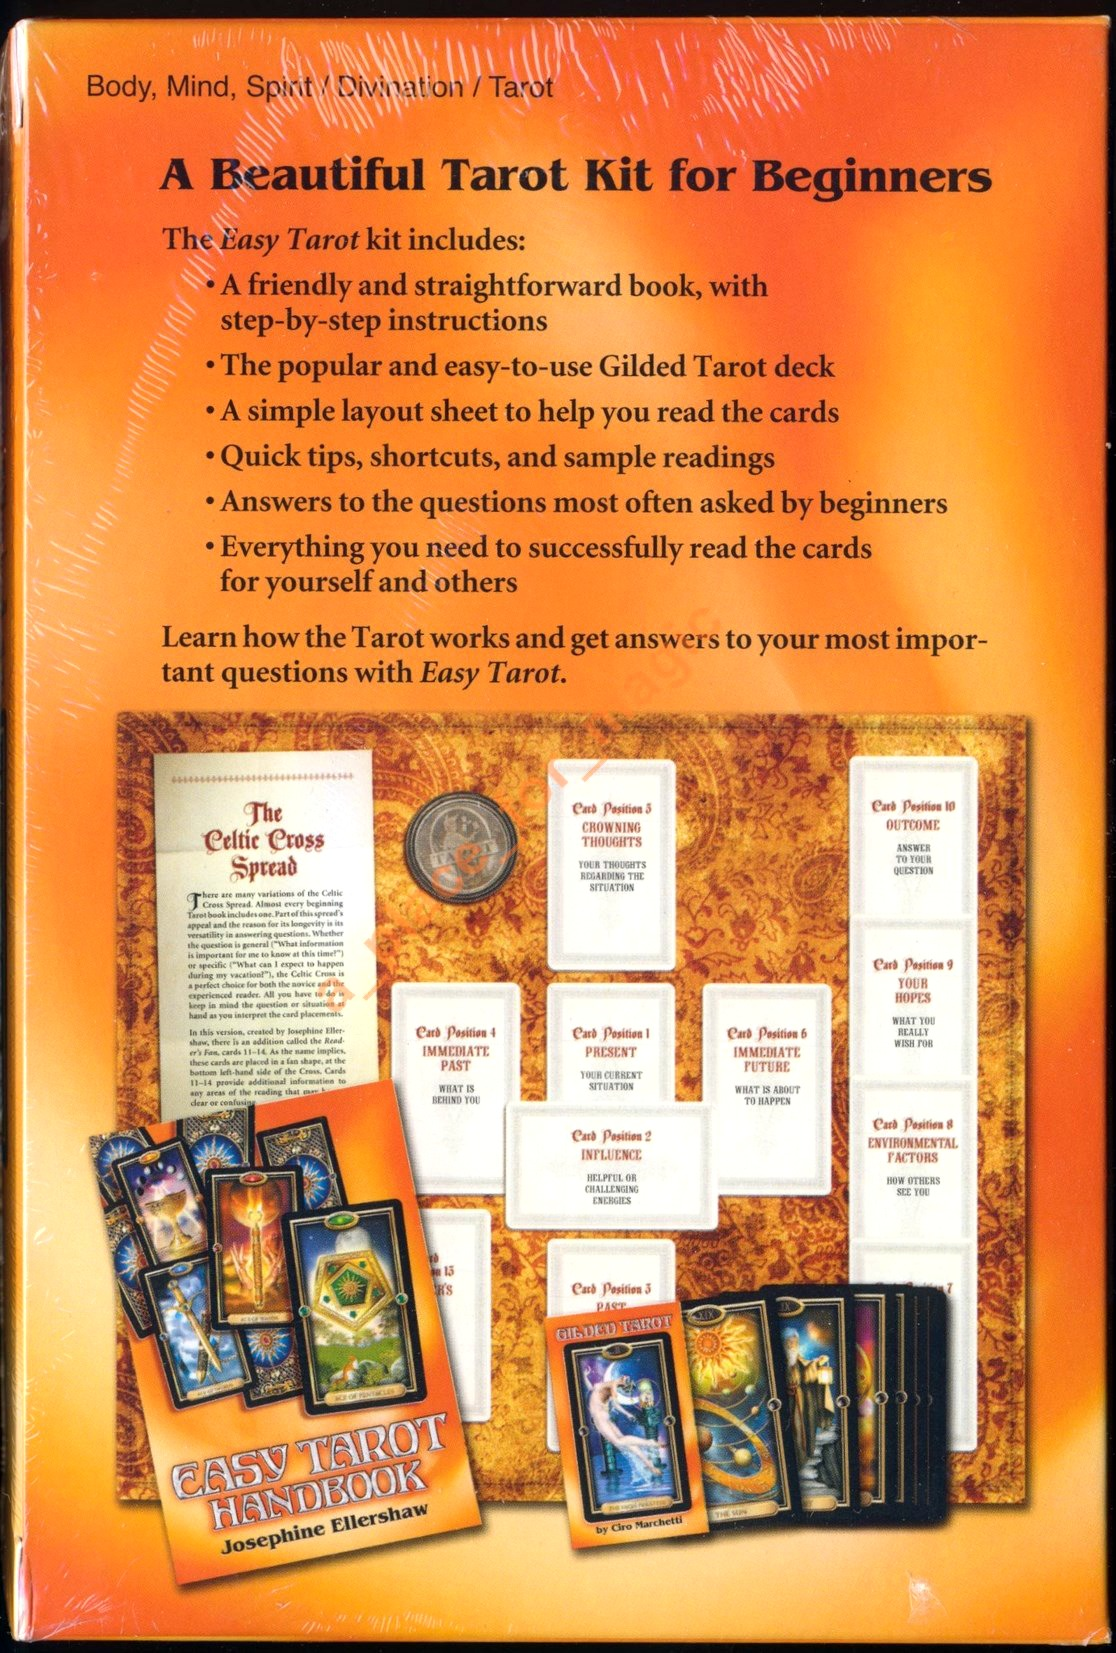 easy-tarot-rear-70-apfm